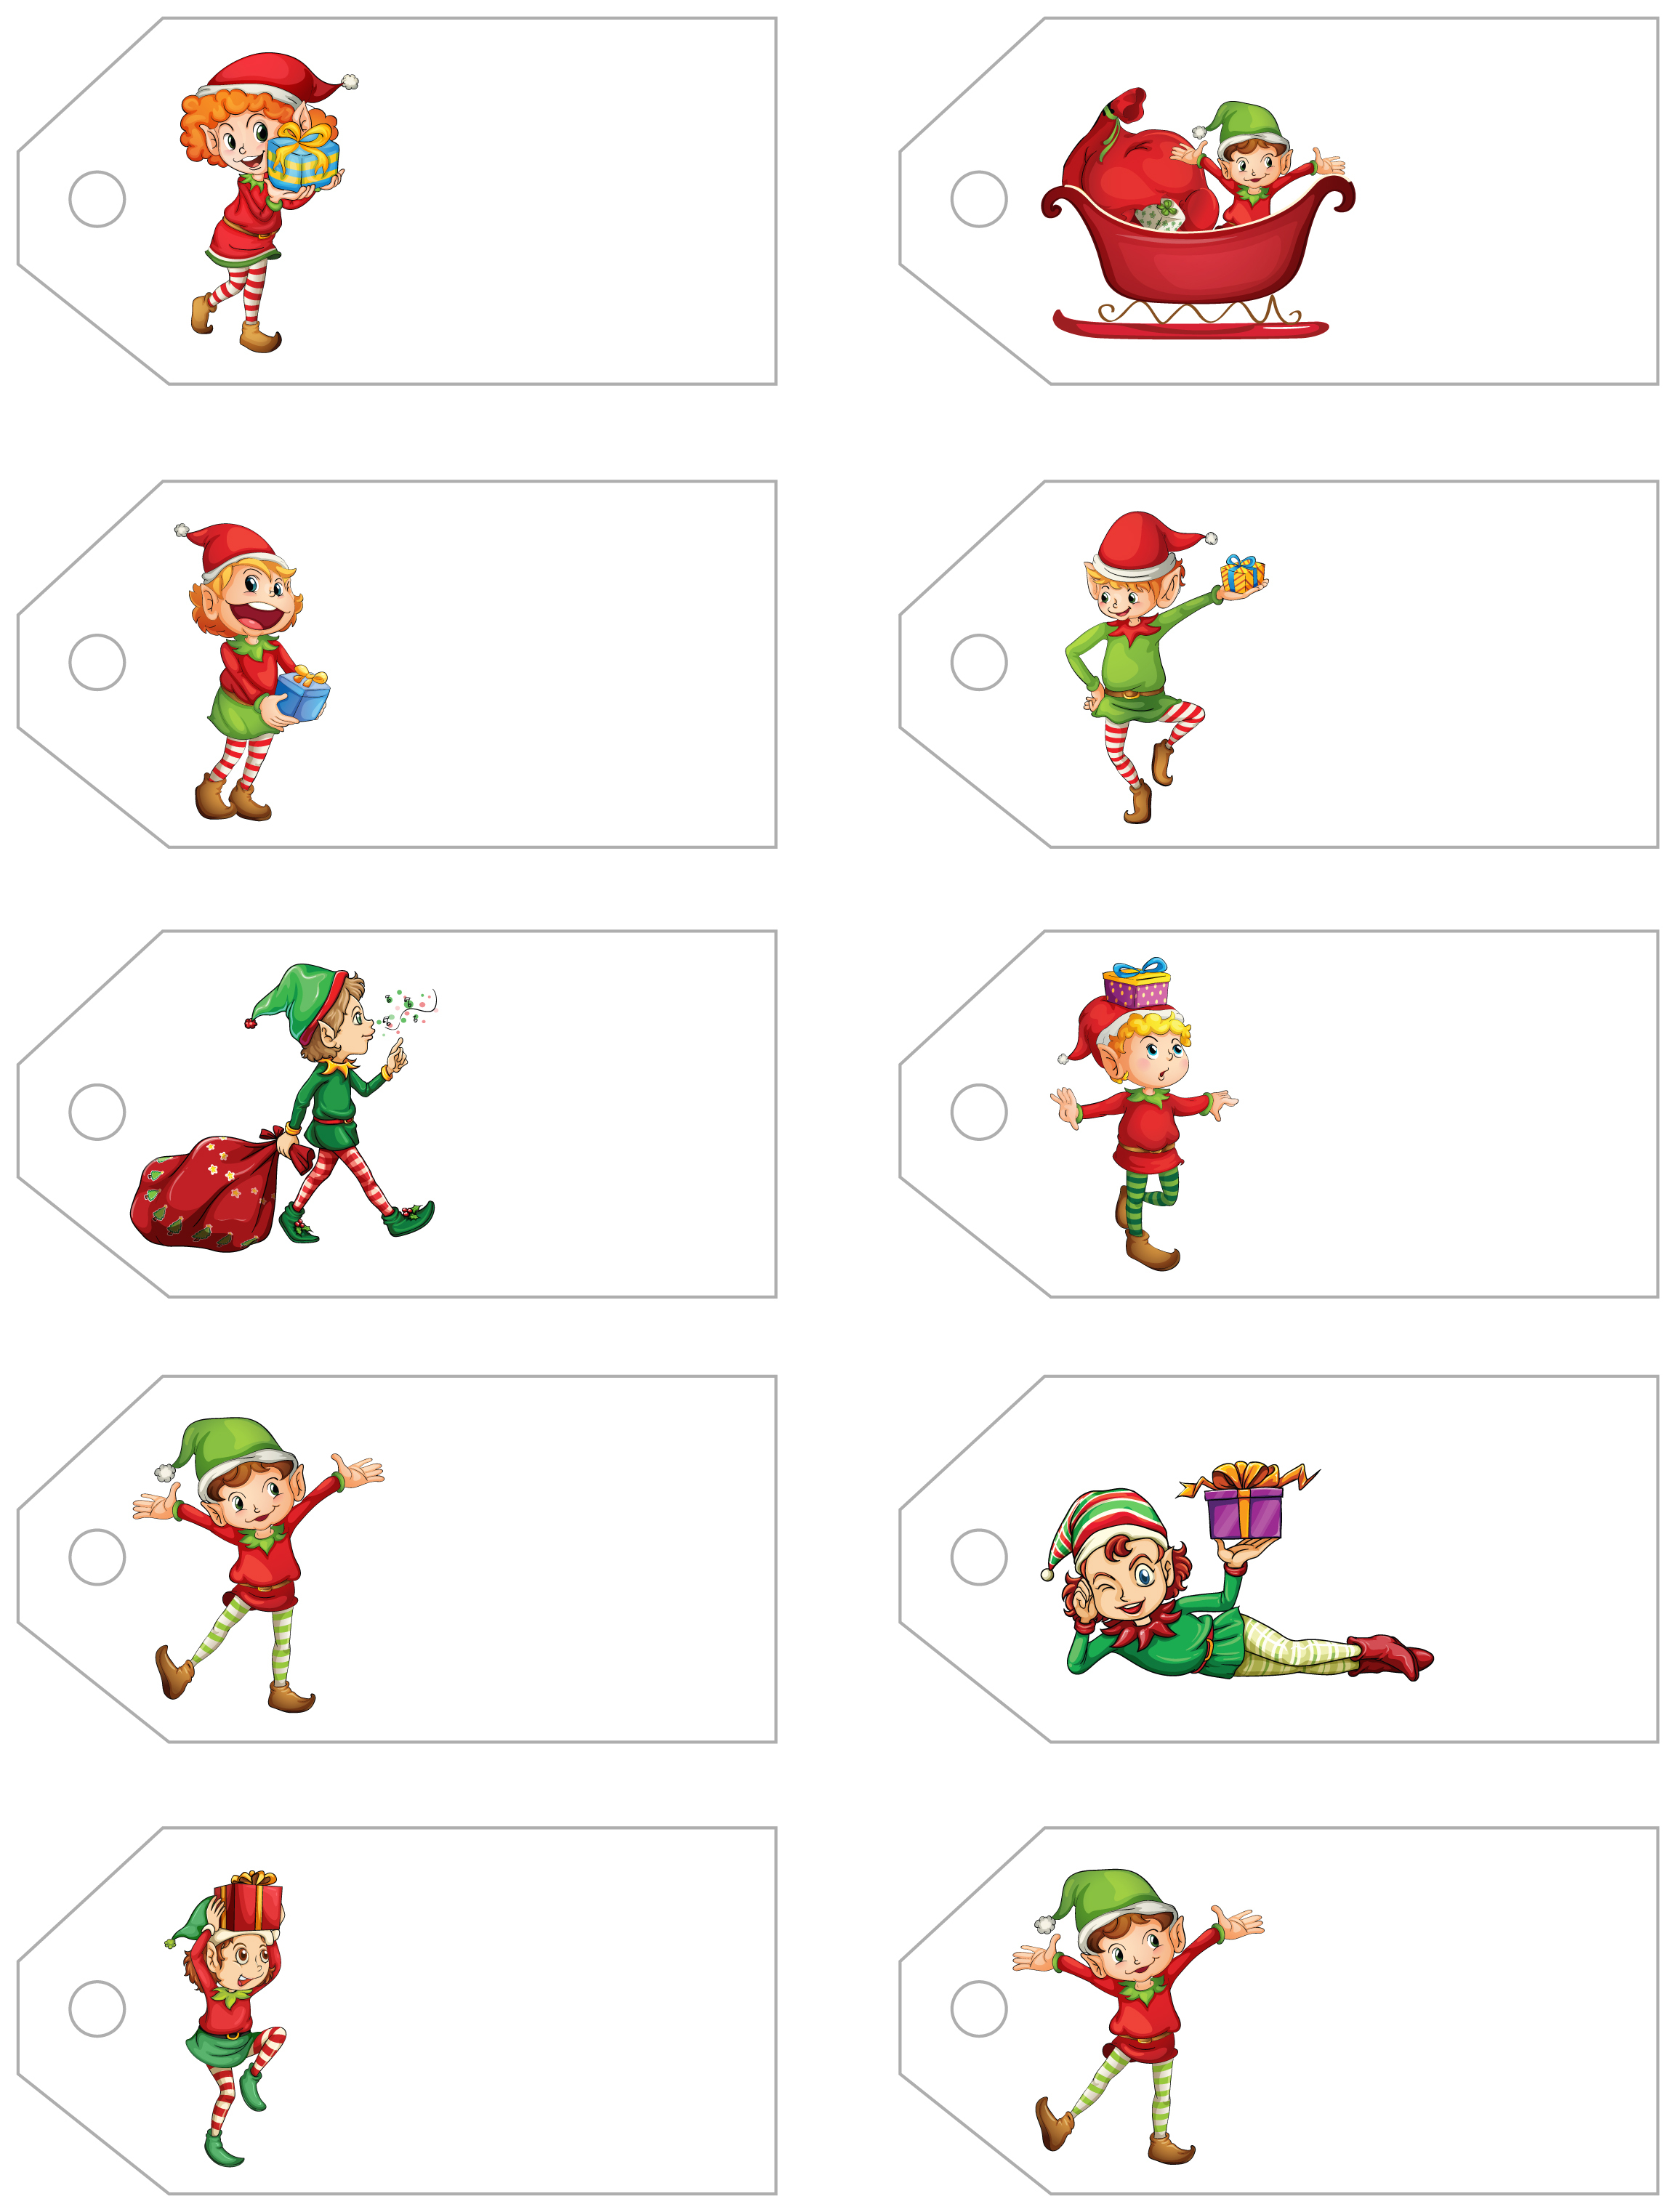 Santa's Little Gift To You! Free Printable Gift Tags And Labels - Free Printable Christmas Gift Tags